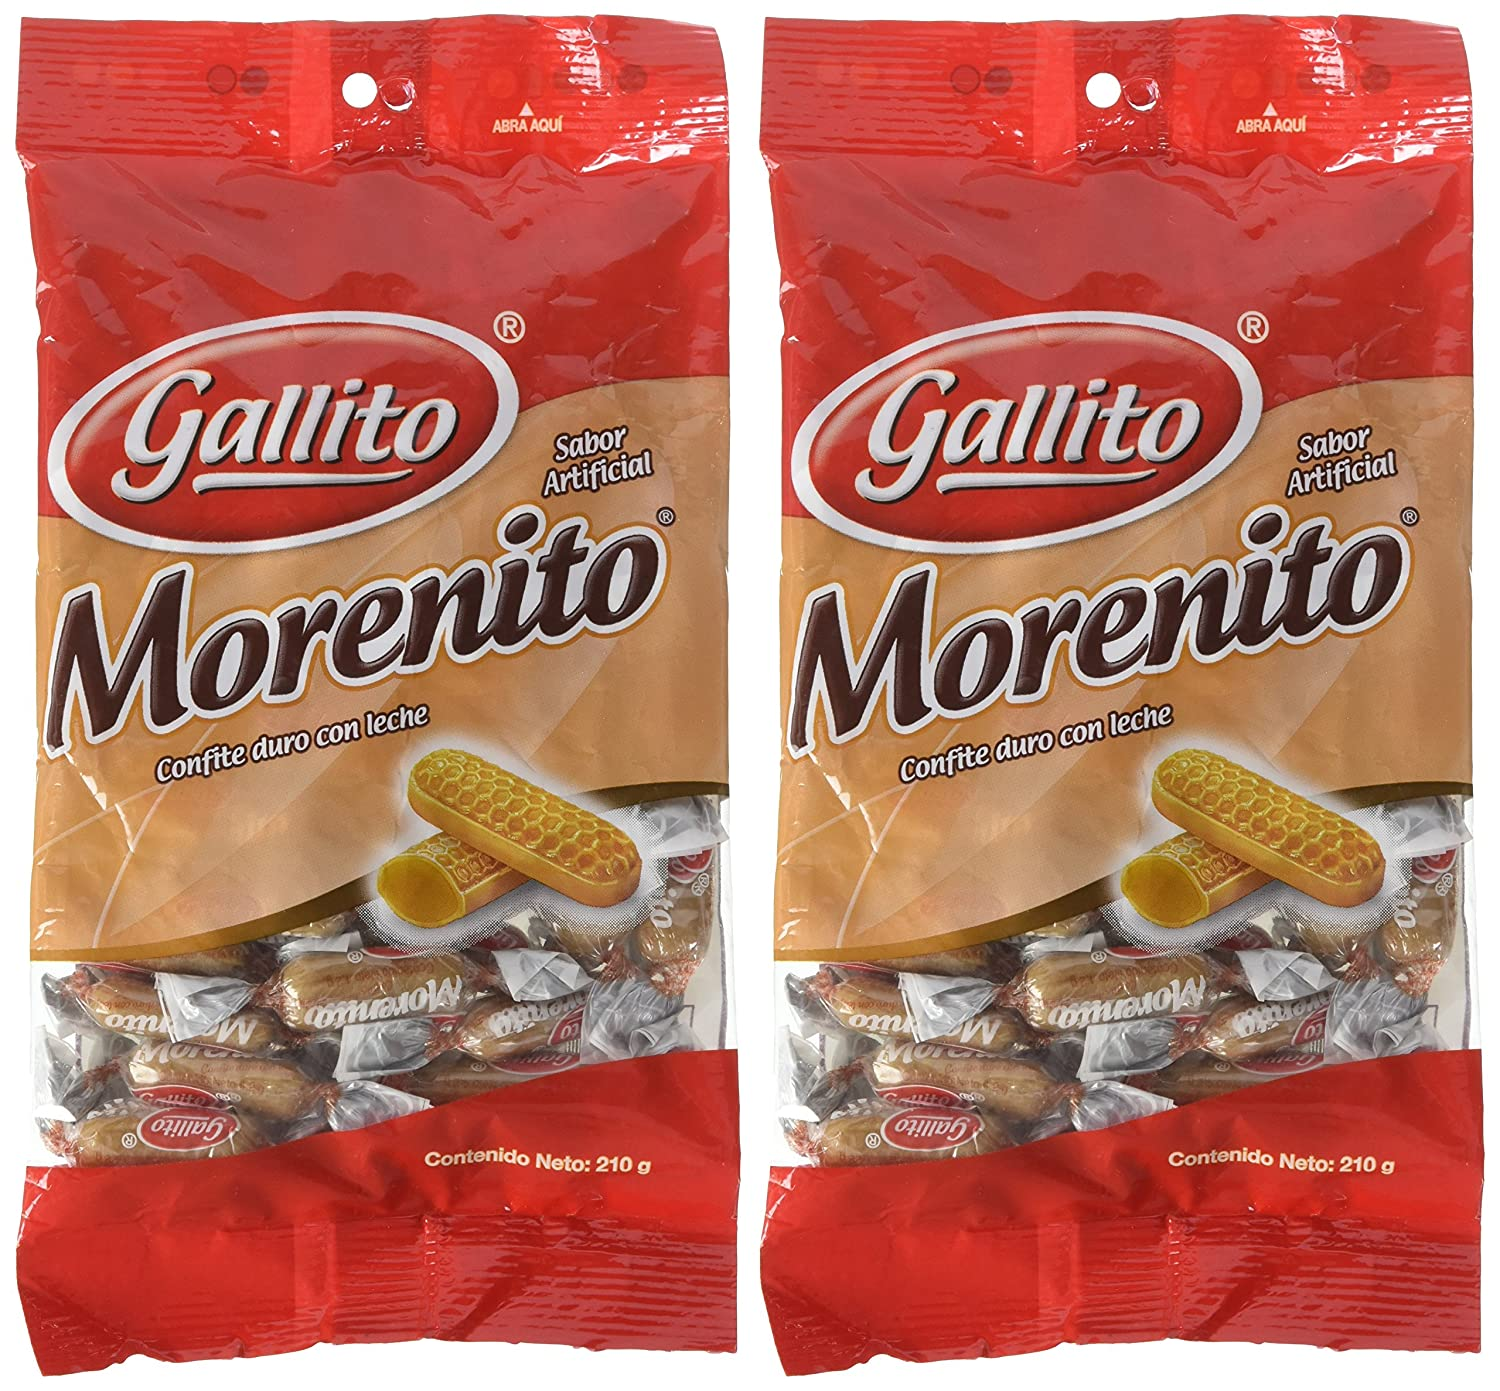 Amazon.com : Gallito Morenito Hard Candy, 2 Bags of 7.5 Ounces : Grocery & Gourmet Food